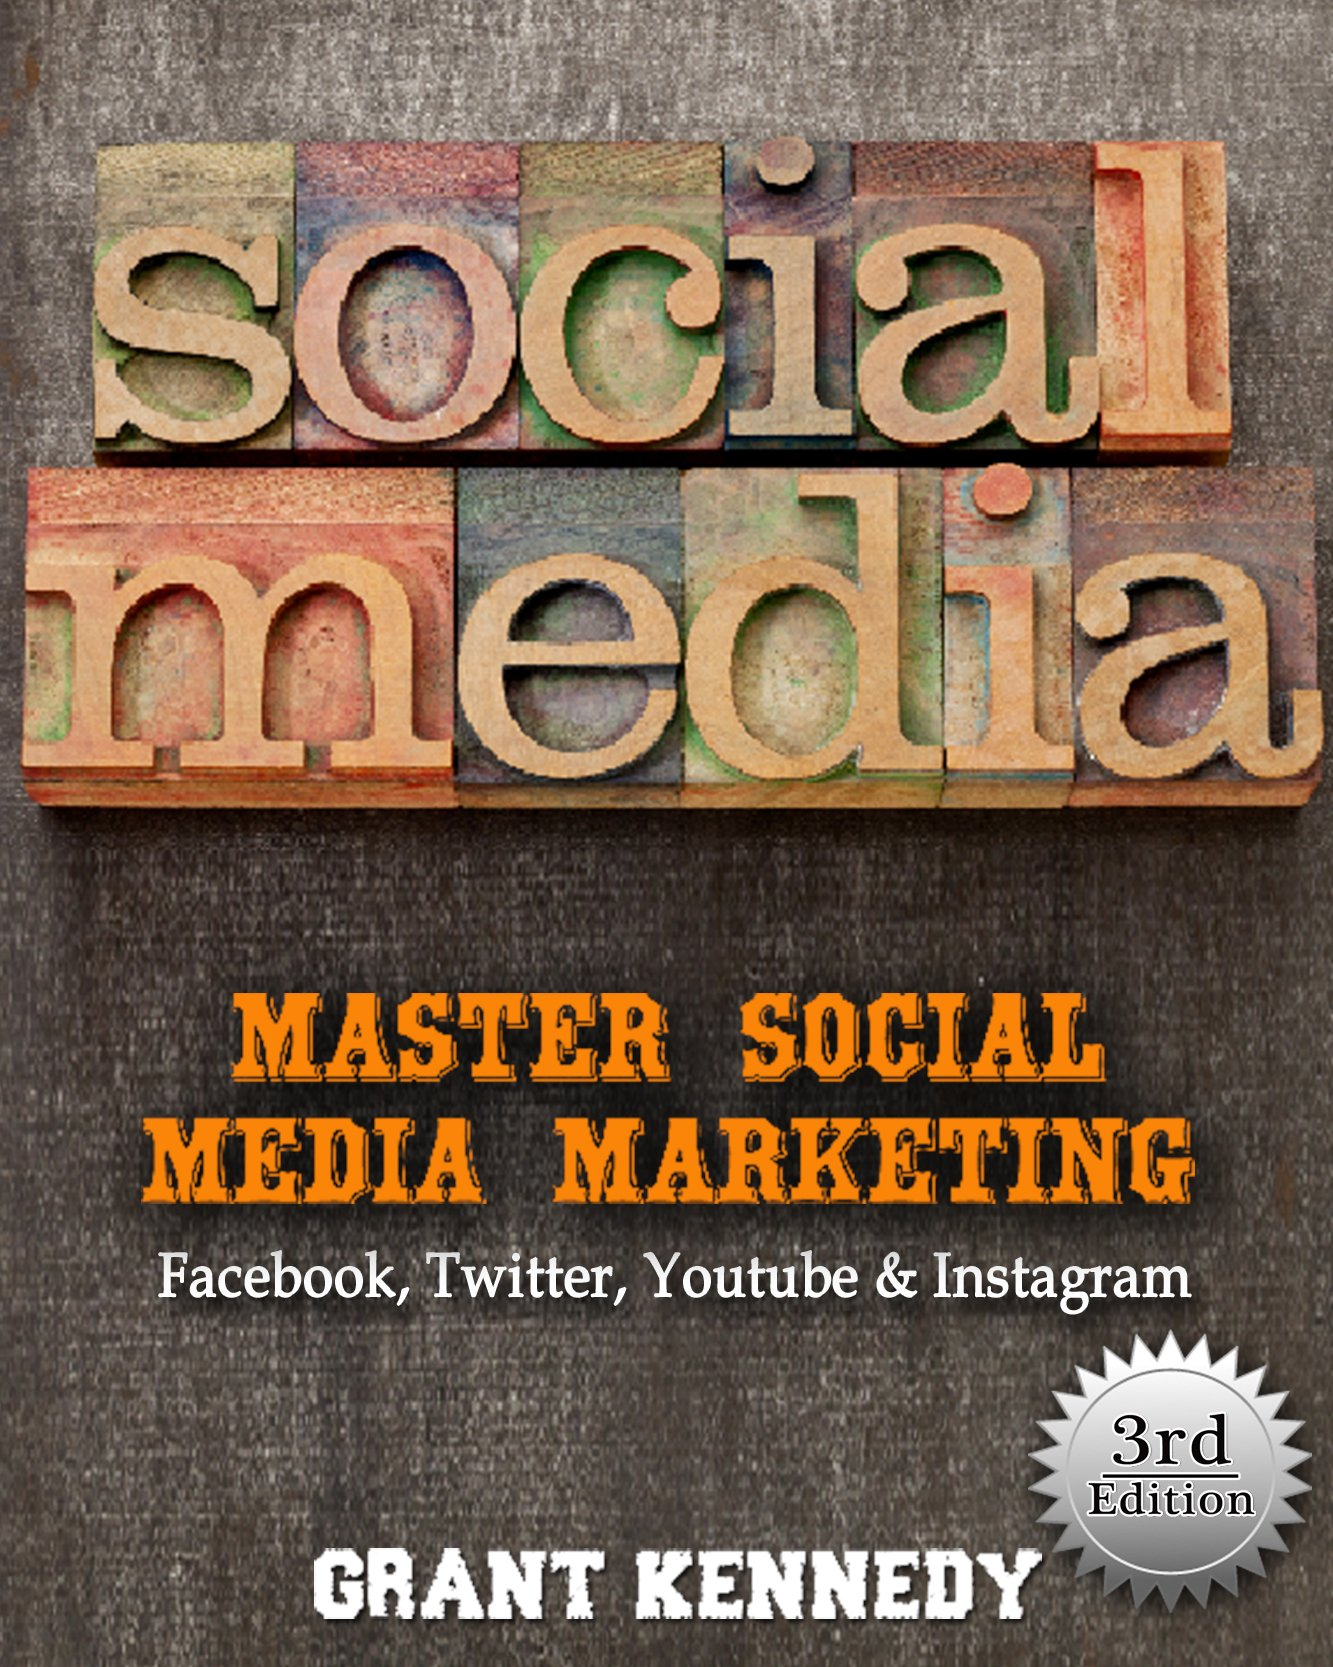 Social Media: Master Social Media Marketing - Facebook, Twitter, Youtube & Instagram (Social Media, Social Media Marketing, Facebook, Twitter, Youtube, Instagram, Pinterest)